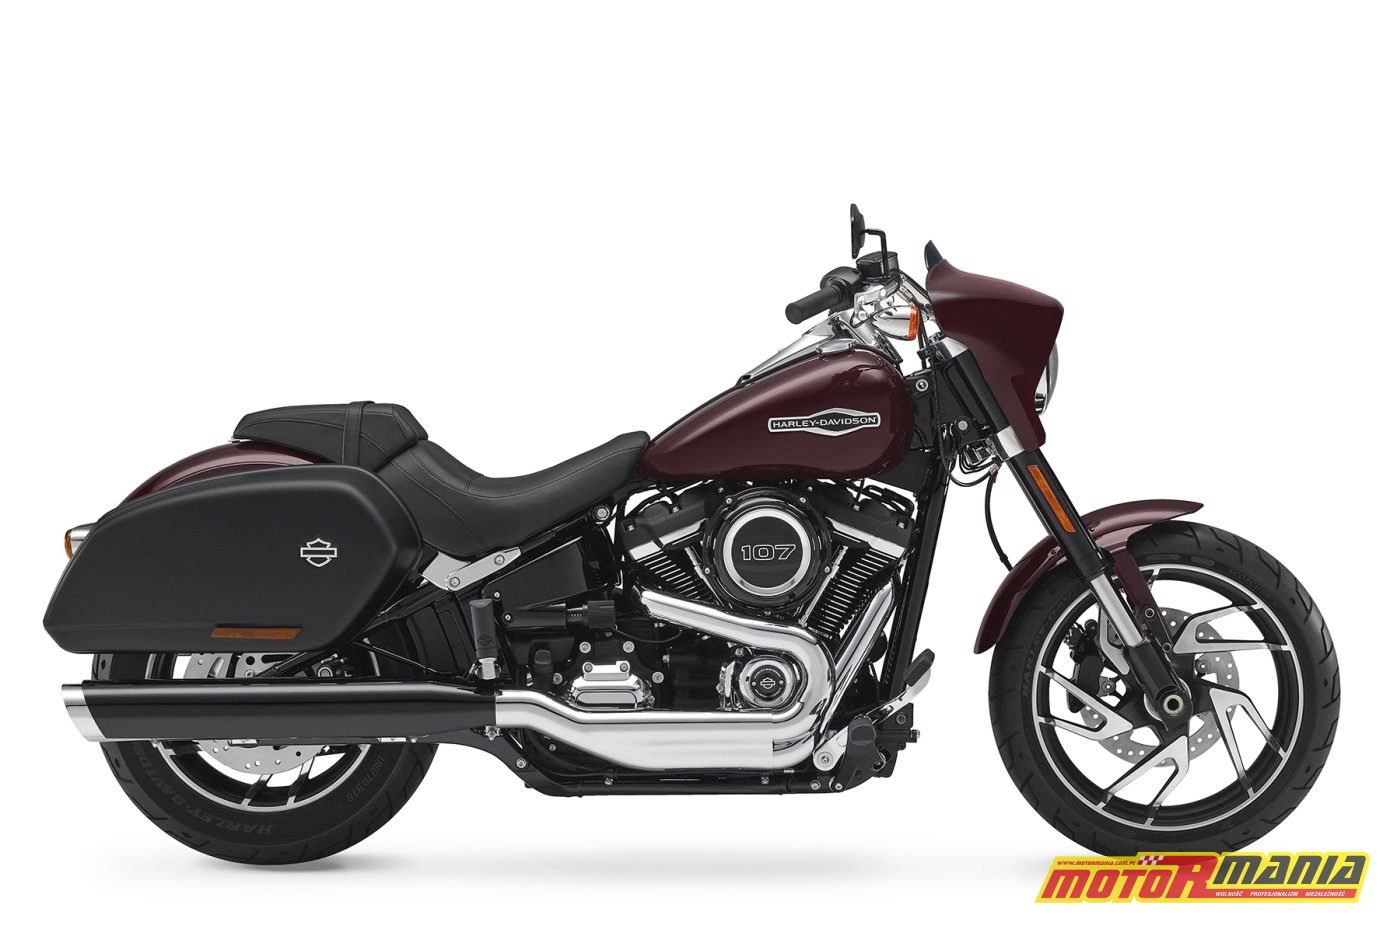 MY18.5 FLSB Sport Glide. Softail. INTERNATIONAL ONLY